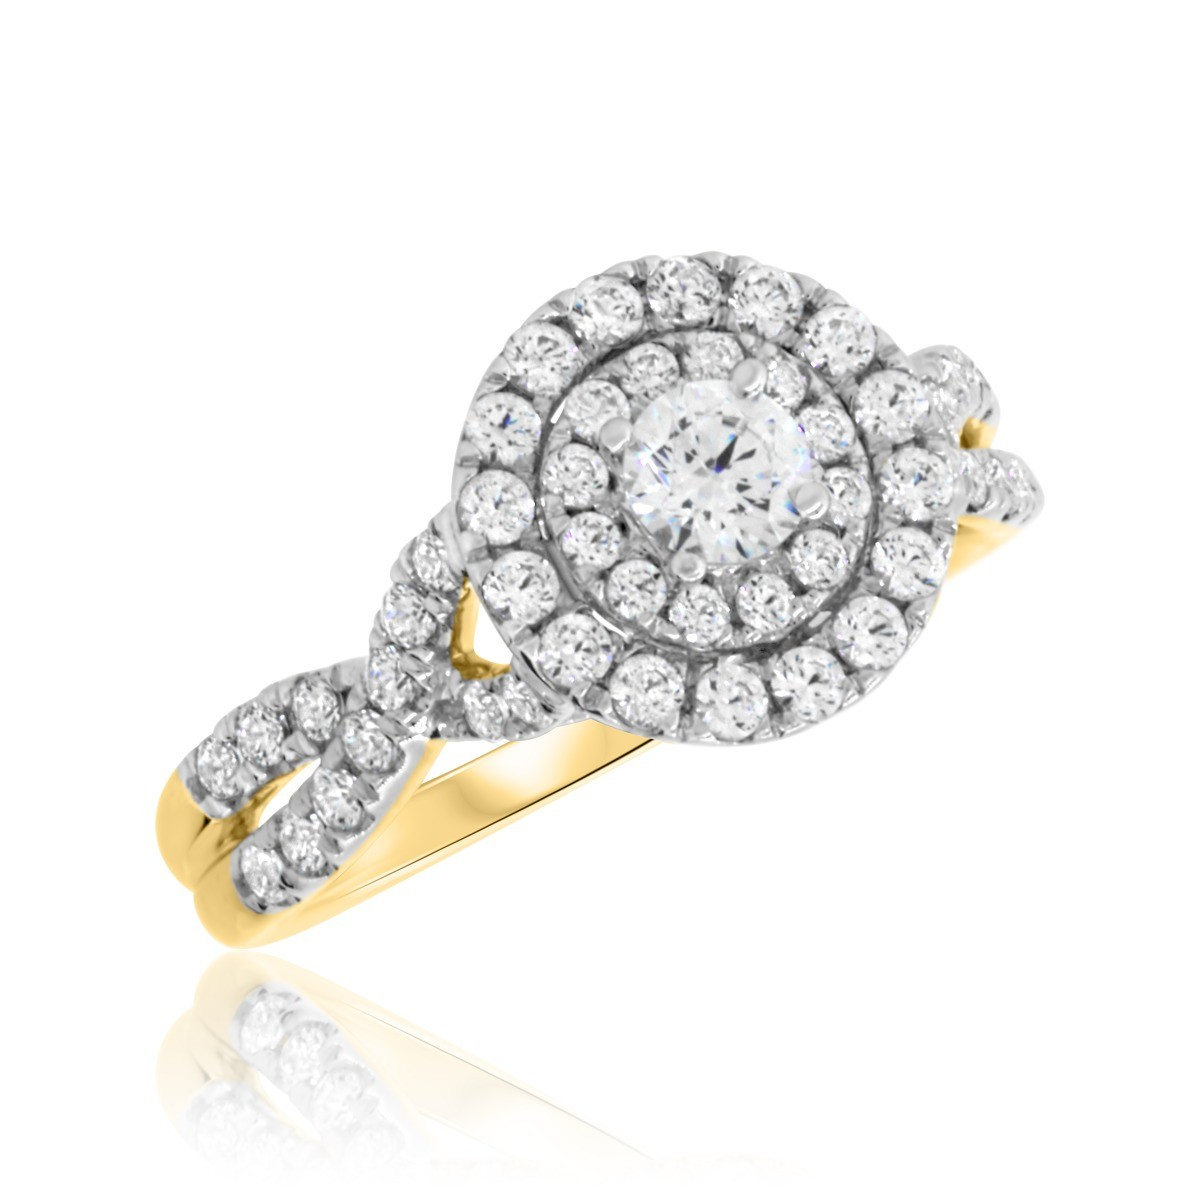 1 CT. T.W. Diamond Engagement Ring 14K Yellow Gold